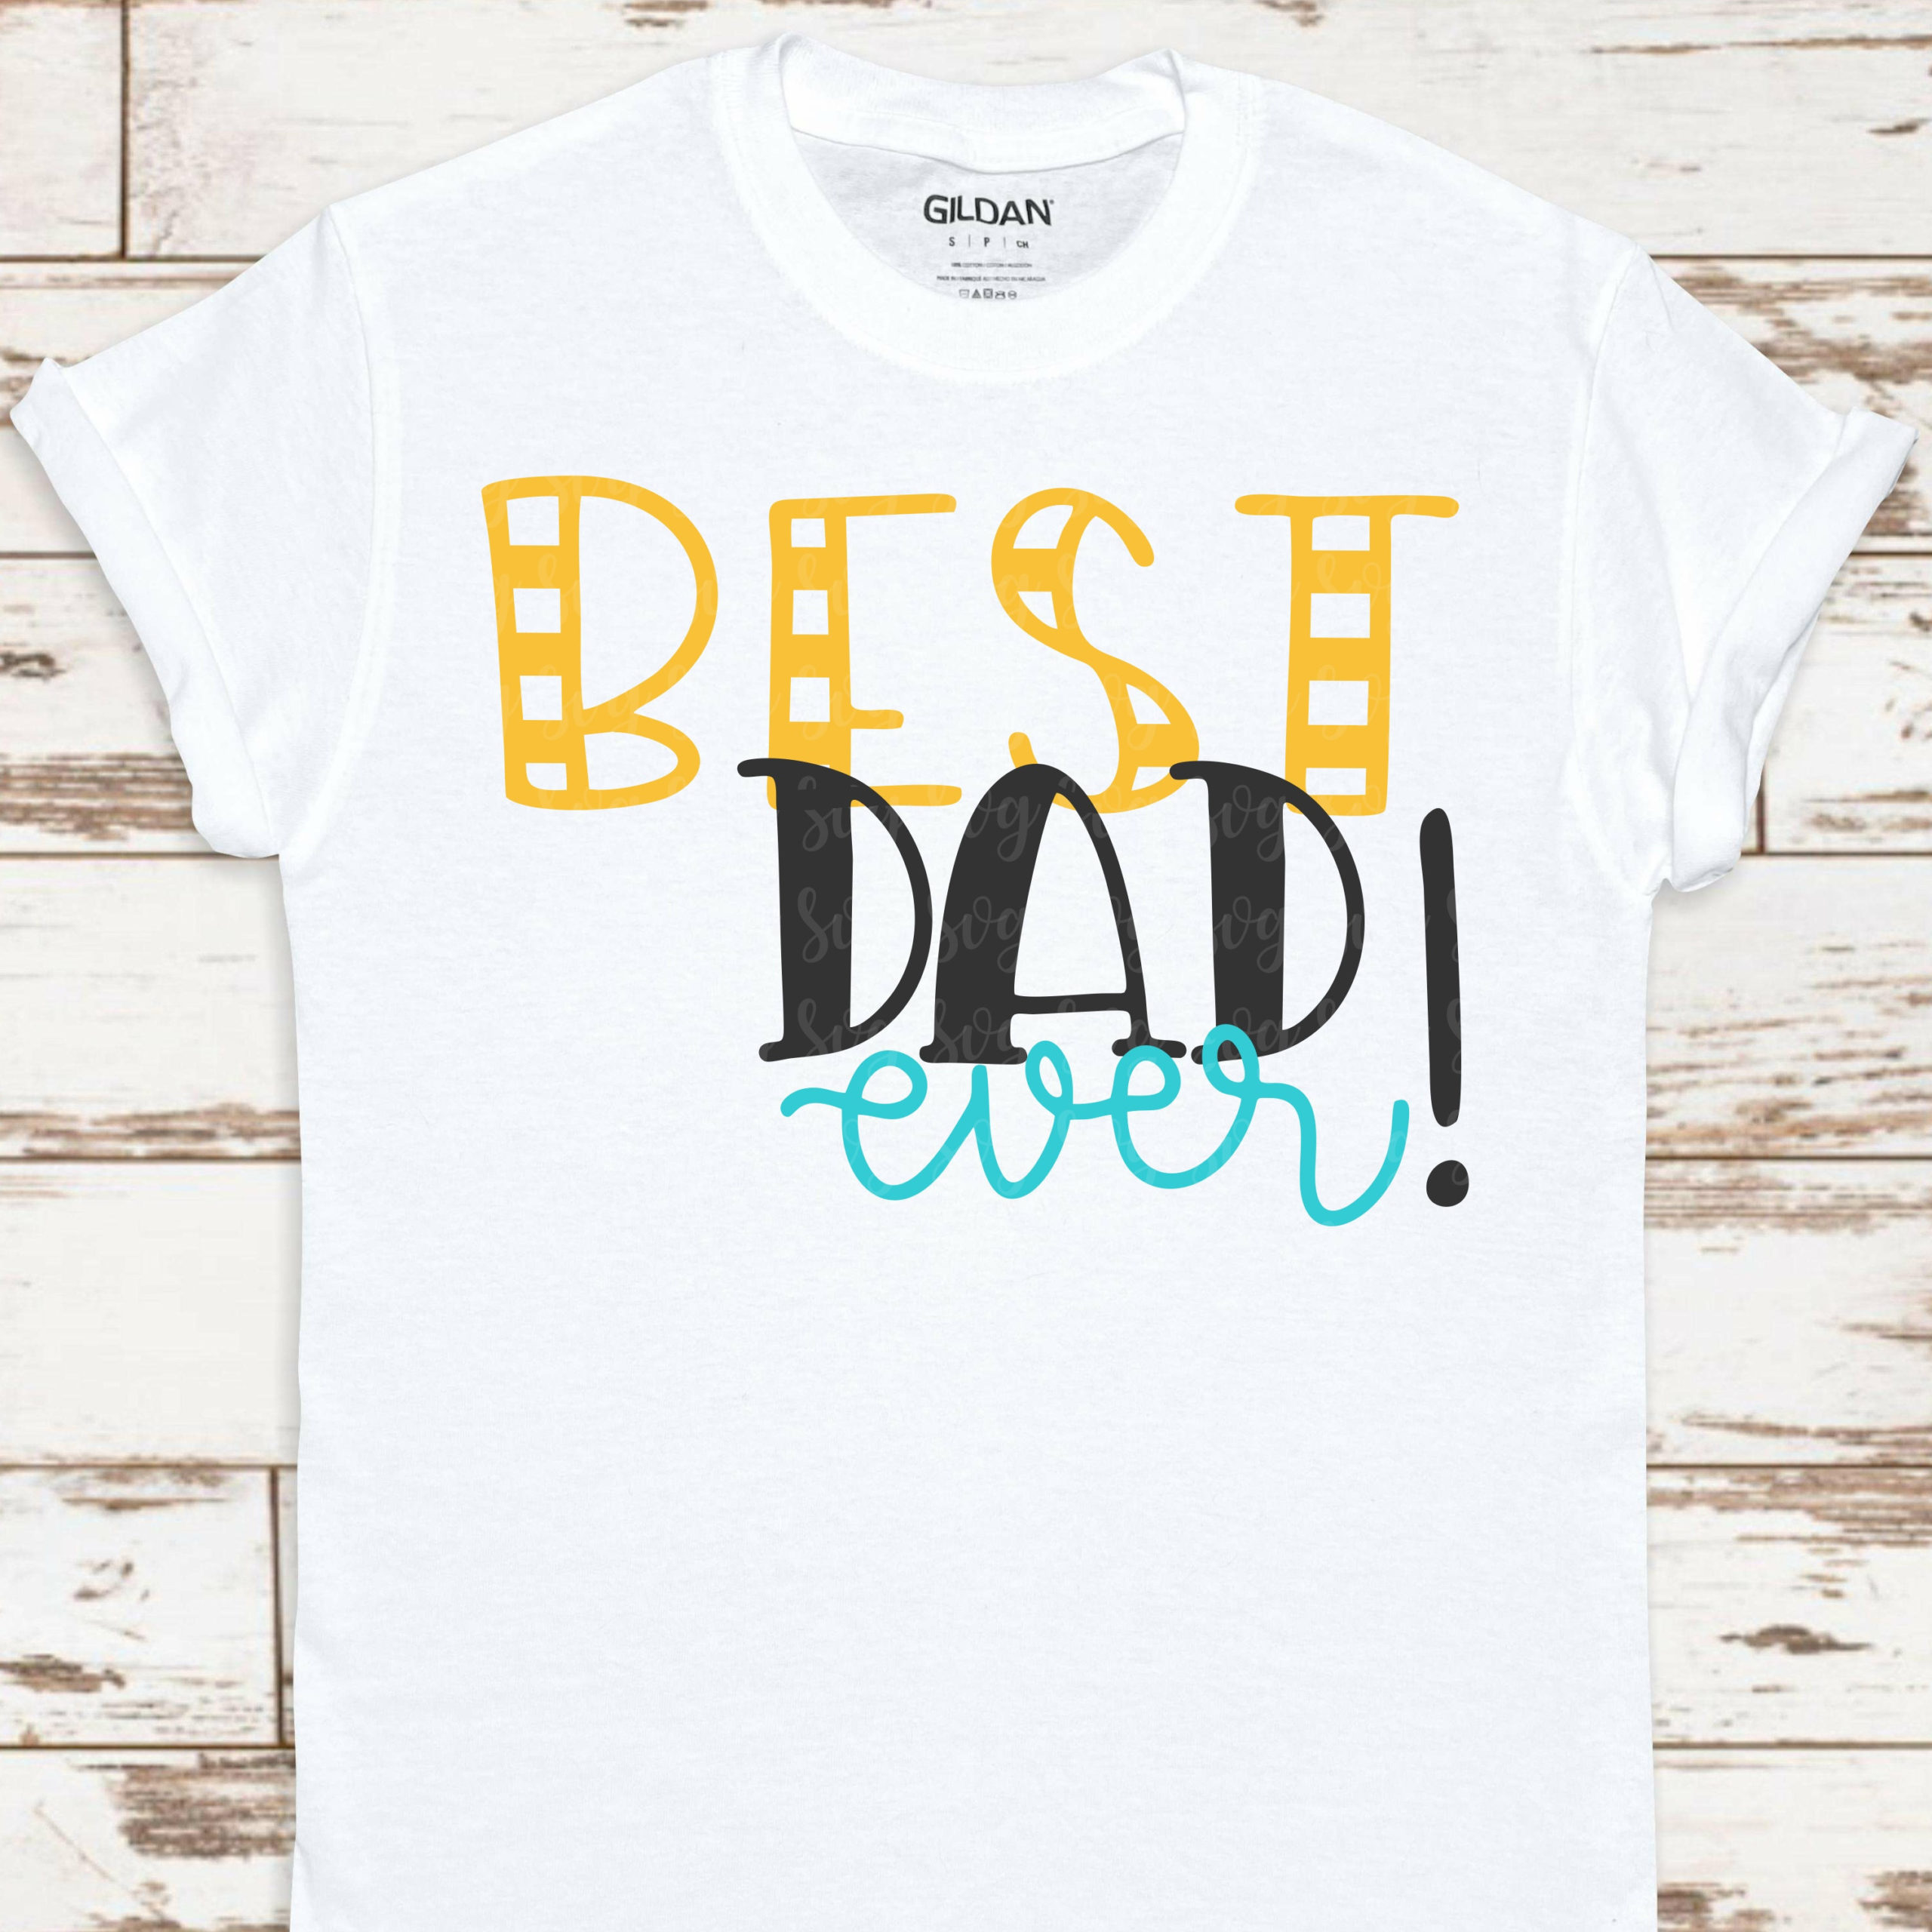 Best-dad-ever-svgfathers-day-svgdad-svgfathers-svgdaddy-svggrandpa-svgsilhouette-dxfcricut-cutting-filessvg-for-cricut-5ef7898c